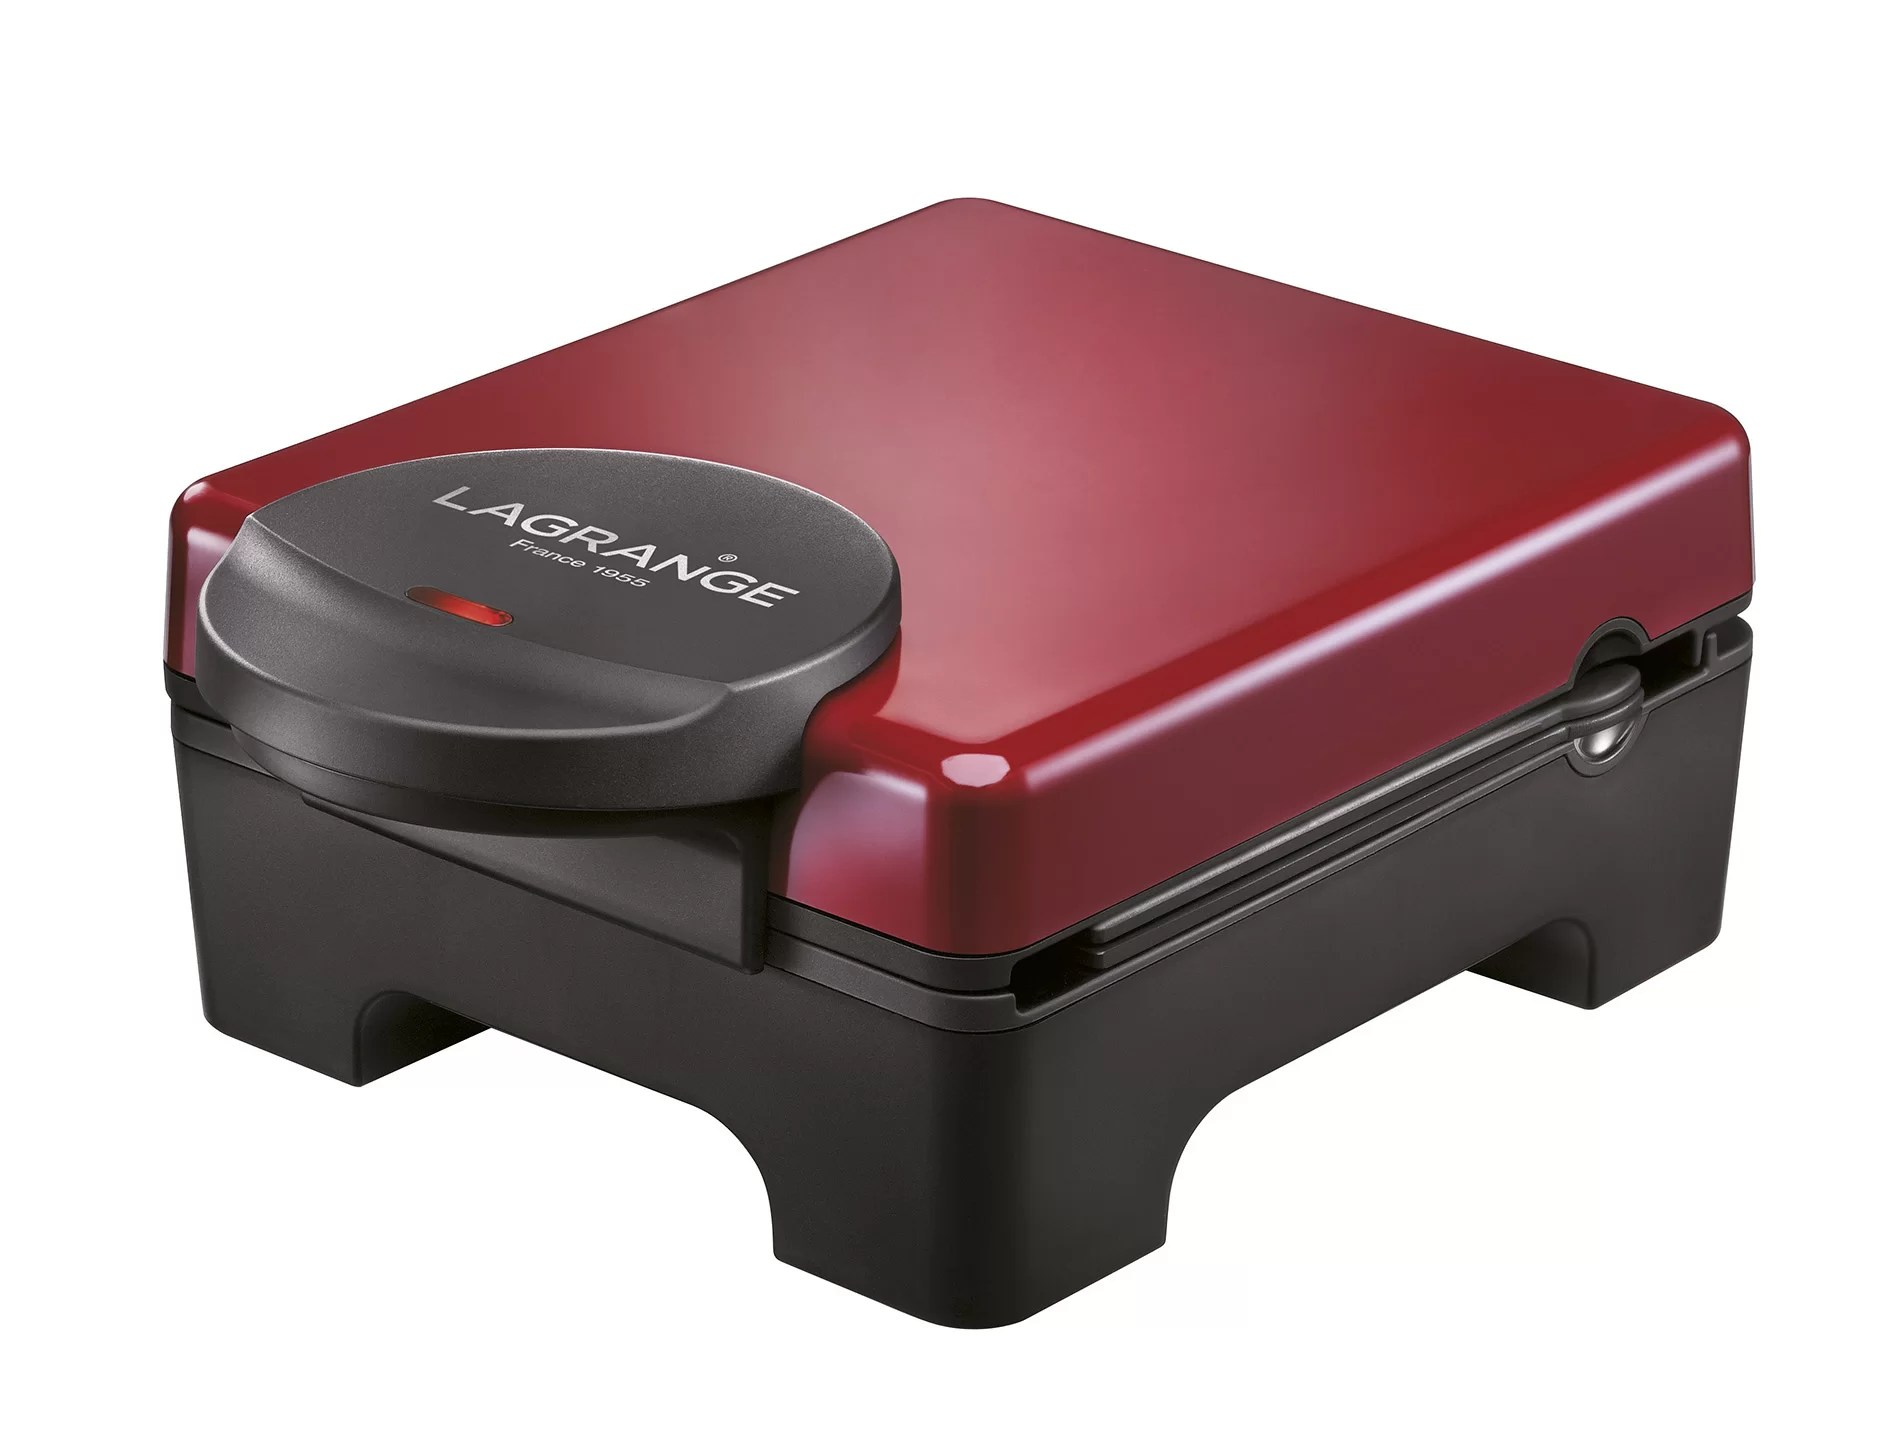 Crepe Party Lagrange Lagrange Tarti 4 Piece Waffle Maker Set